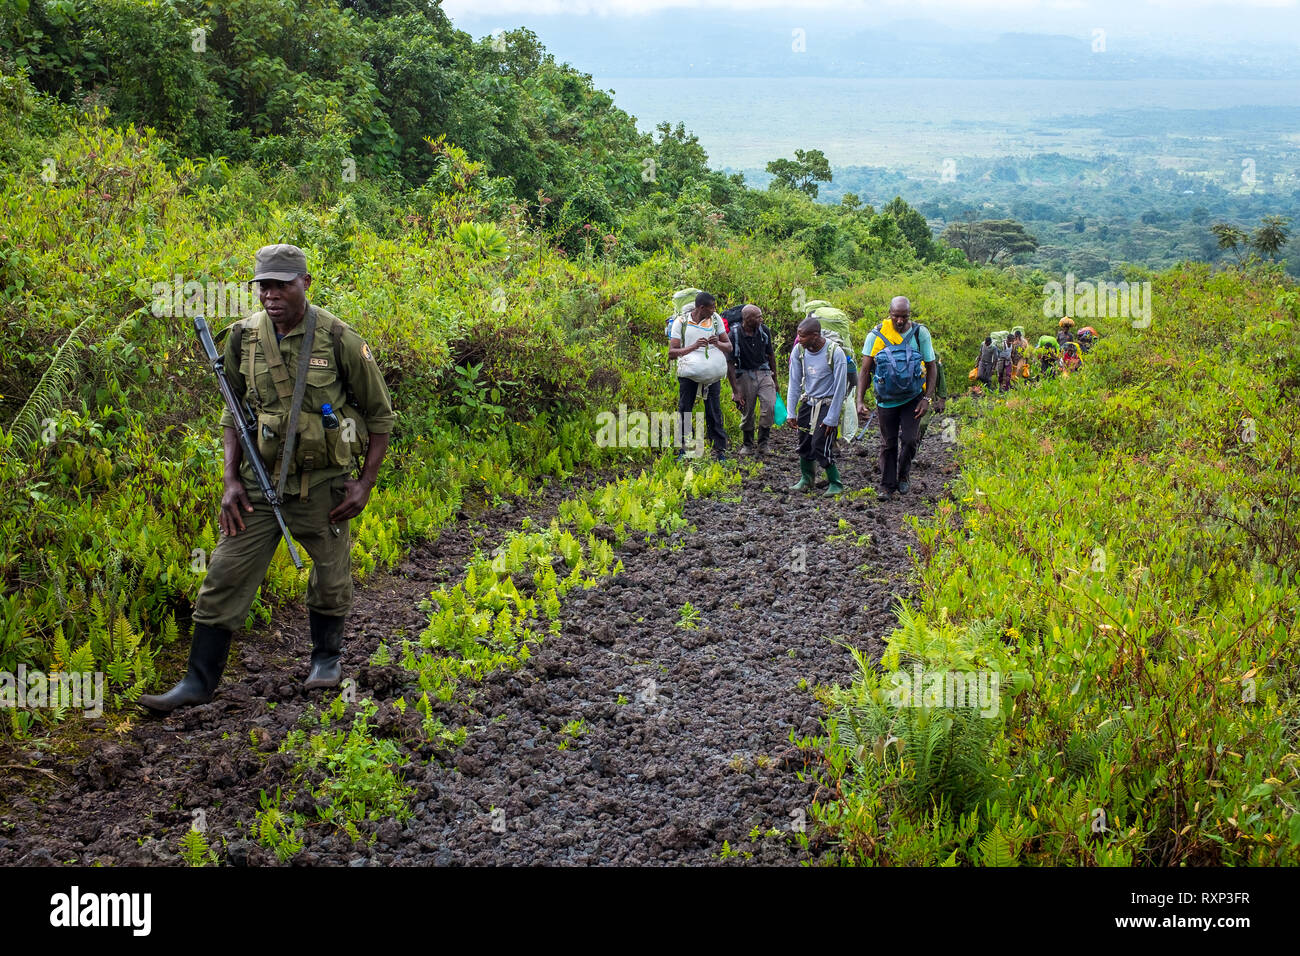 A park ranger leads a group hiking up Nyiragongo in Virunga National Park, Congo - Stock Image